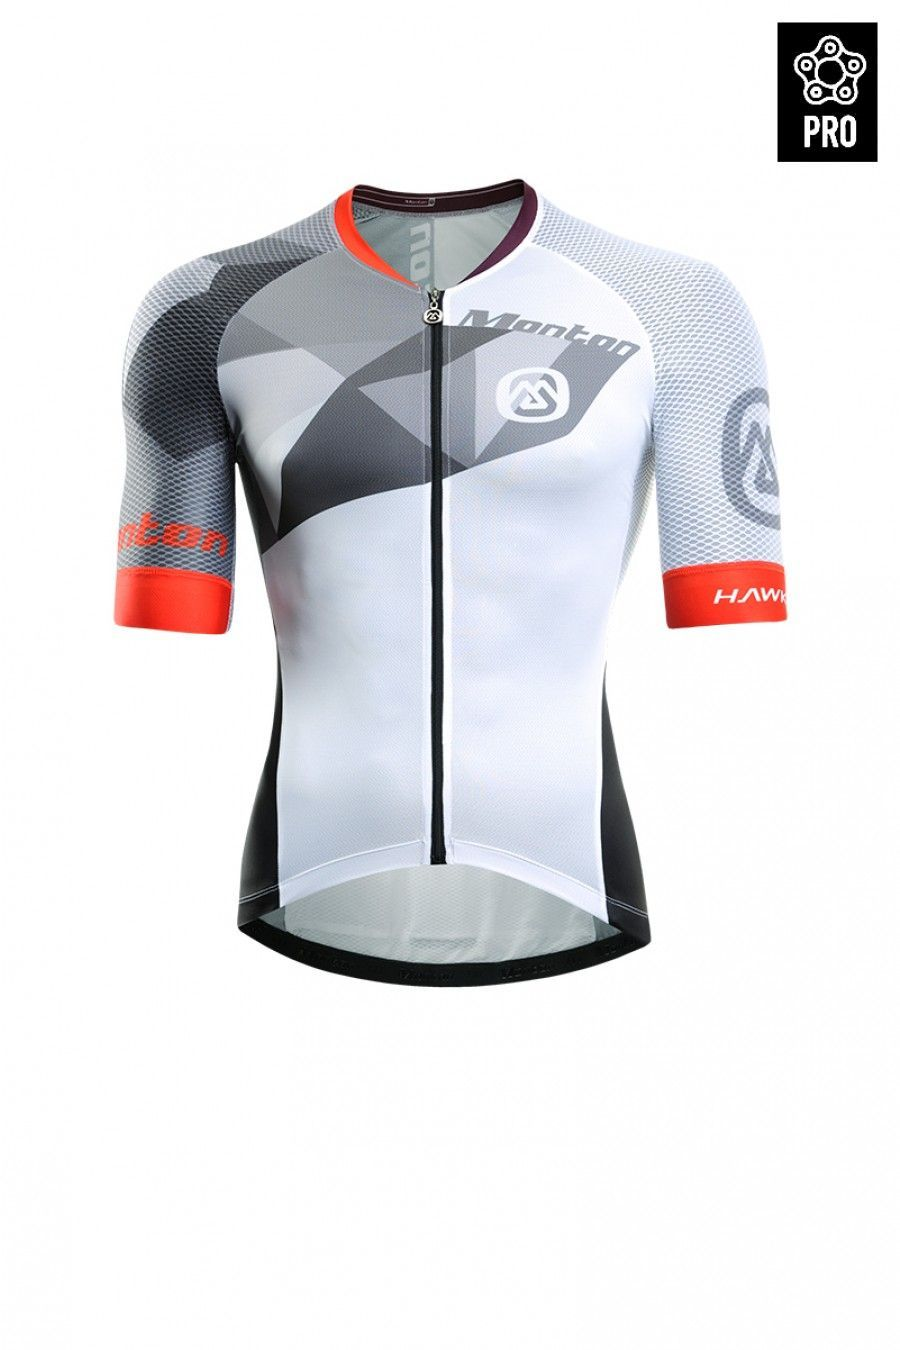 5258d6386 cycling jersey